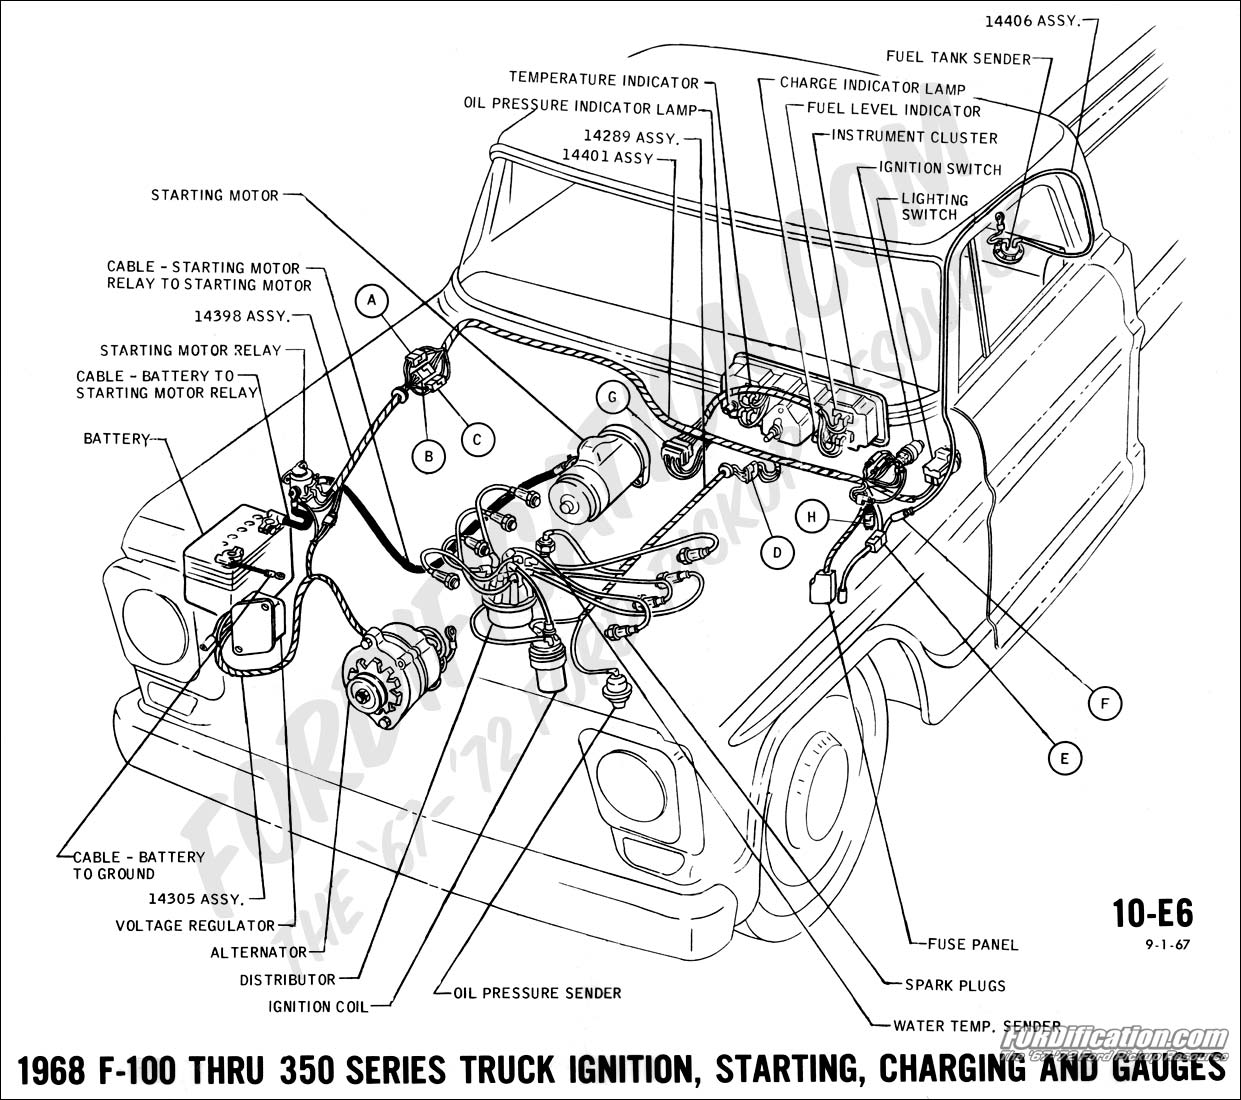 Ford Truck Technical Drawings And Schematics Section H Wiring Traffic Light Diagram In Addition Flasher Relay Circuit 1968 F 100 Thru 350 Ignition Starting Charging Gauges